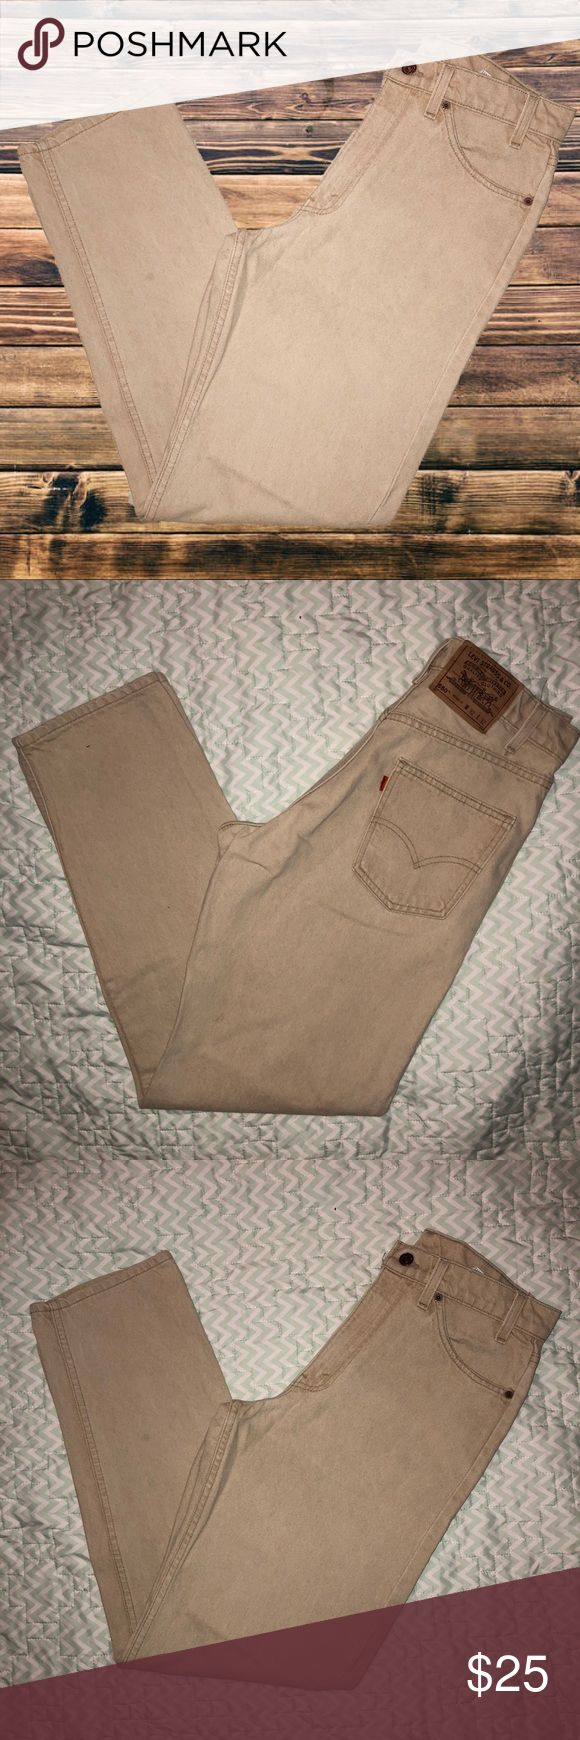 32/32 Levi's Orange Tab Tan Relaxed Fit Jeans Brand: Levi's Levi Strauss & co.  Size: 32/32  Details: preform & perfect mom jeans! Colored tan factory made this way. Saught after mom jean brand. Perfect to distress, make into shorts & uniquely design to fit you! 550. Big orange tab with little e. Does have spot on leg as seen in photos  Condition: Excellent Used  Material: 100% cotton   Feel free to bundle to SAVE! Best offers are welcome! Items are priced with negotiation in mind :) Levi's…